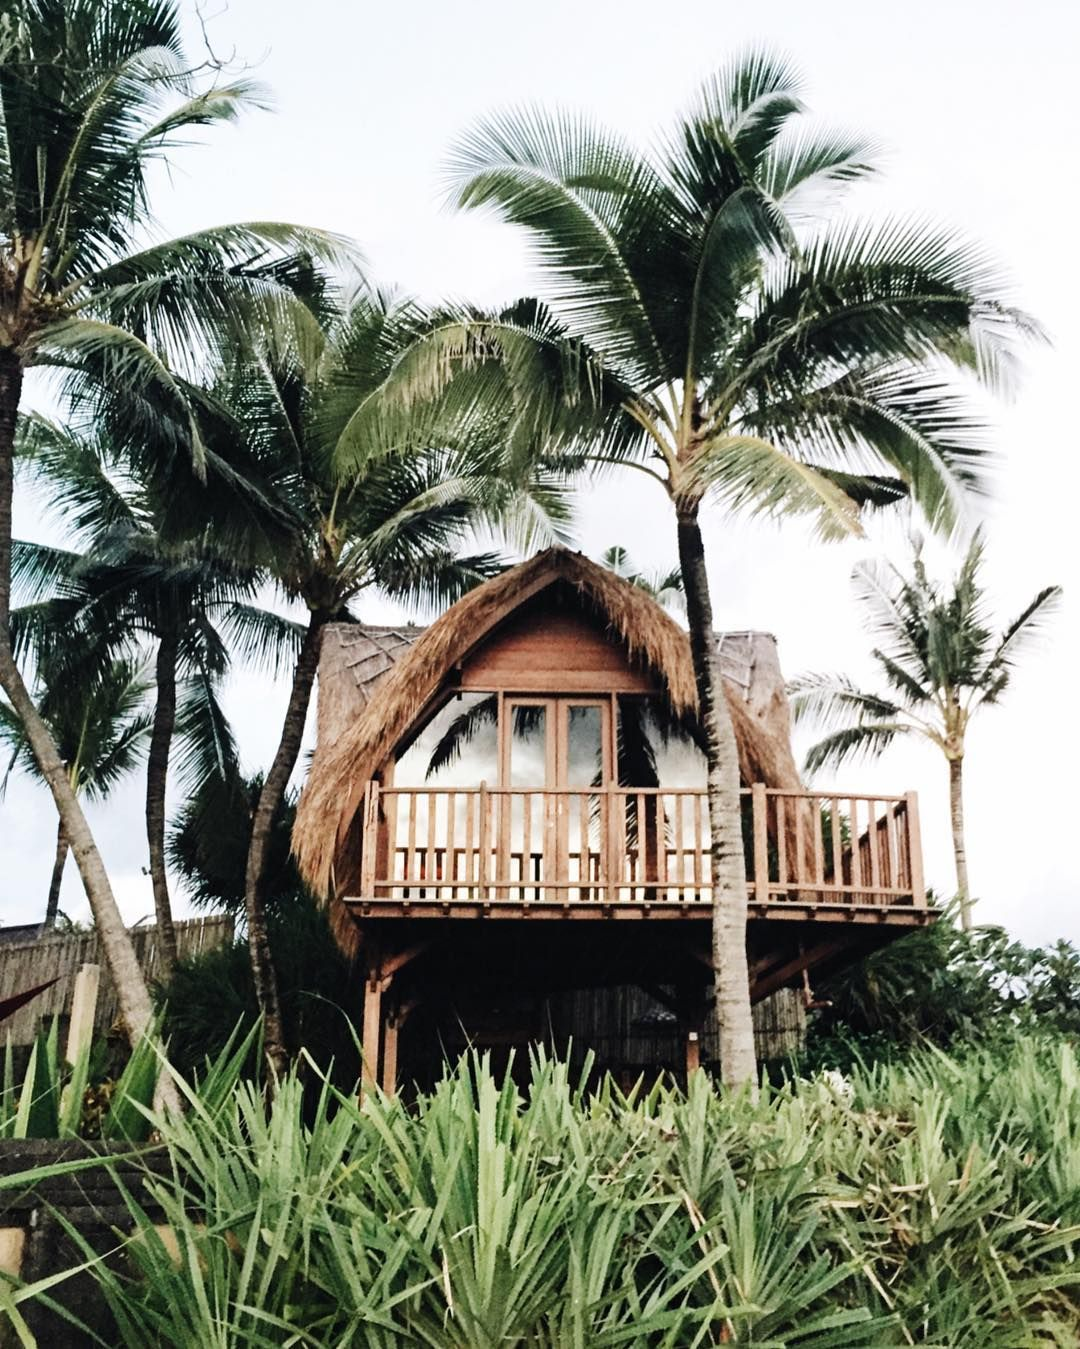 Bali Indonesia Beach Hut Surrounded By Palm Trees Bali